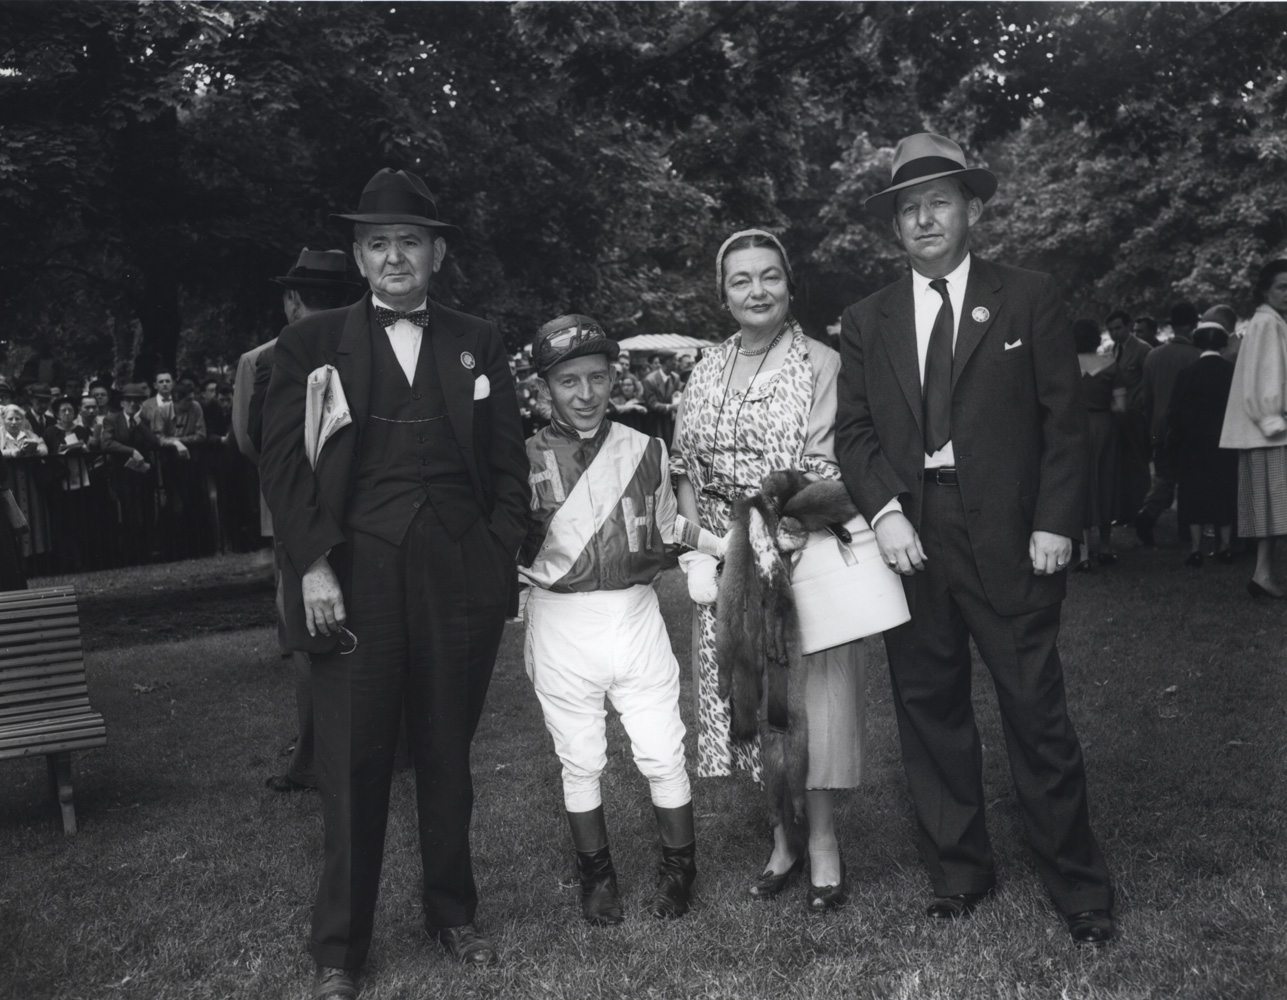 John Adams with owners Mr. and Mrs. A. E. Reuben and trainer Harry Trotsek (far right) in the Belmont Park paddock, May 1954 (Keeneland Library Morgan Collection/Museum Collection)